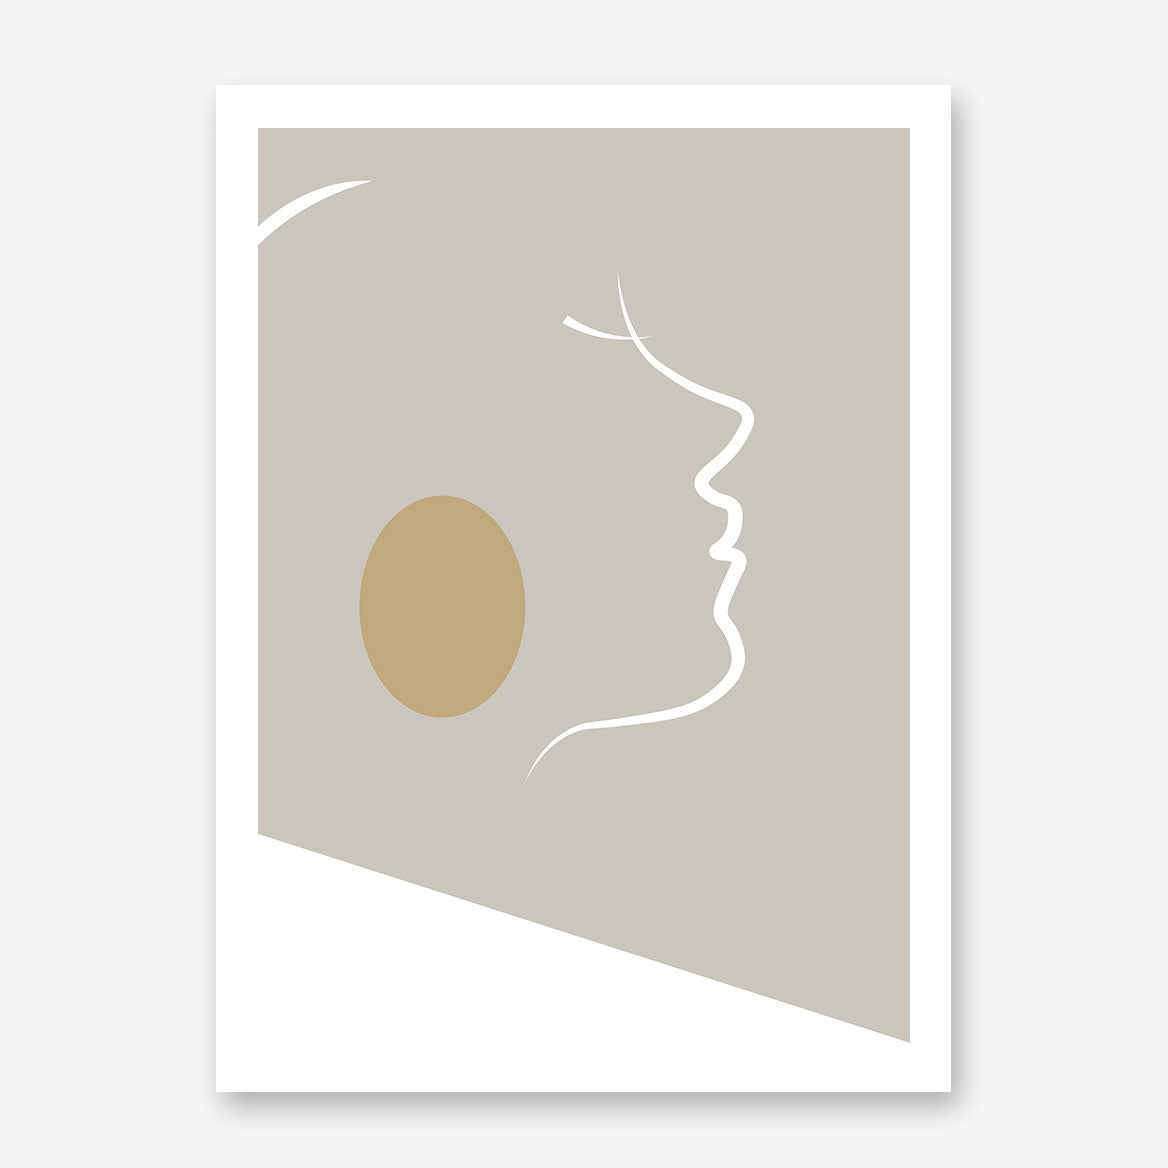 Abstract poster print with white lines woman's portrait on grey background.